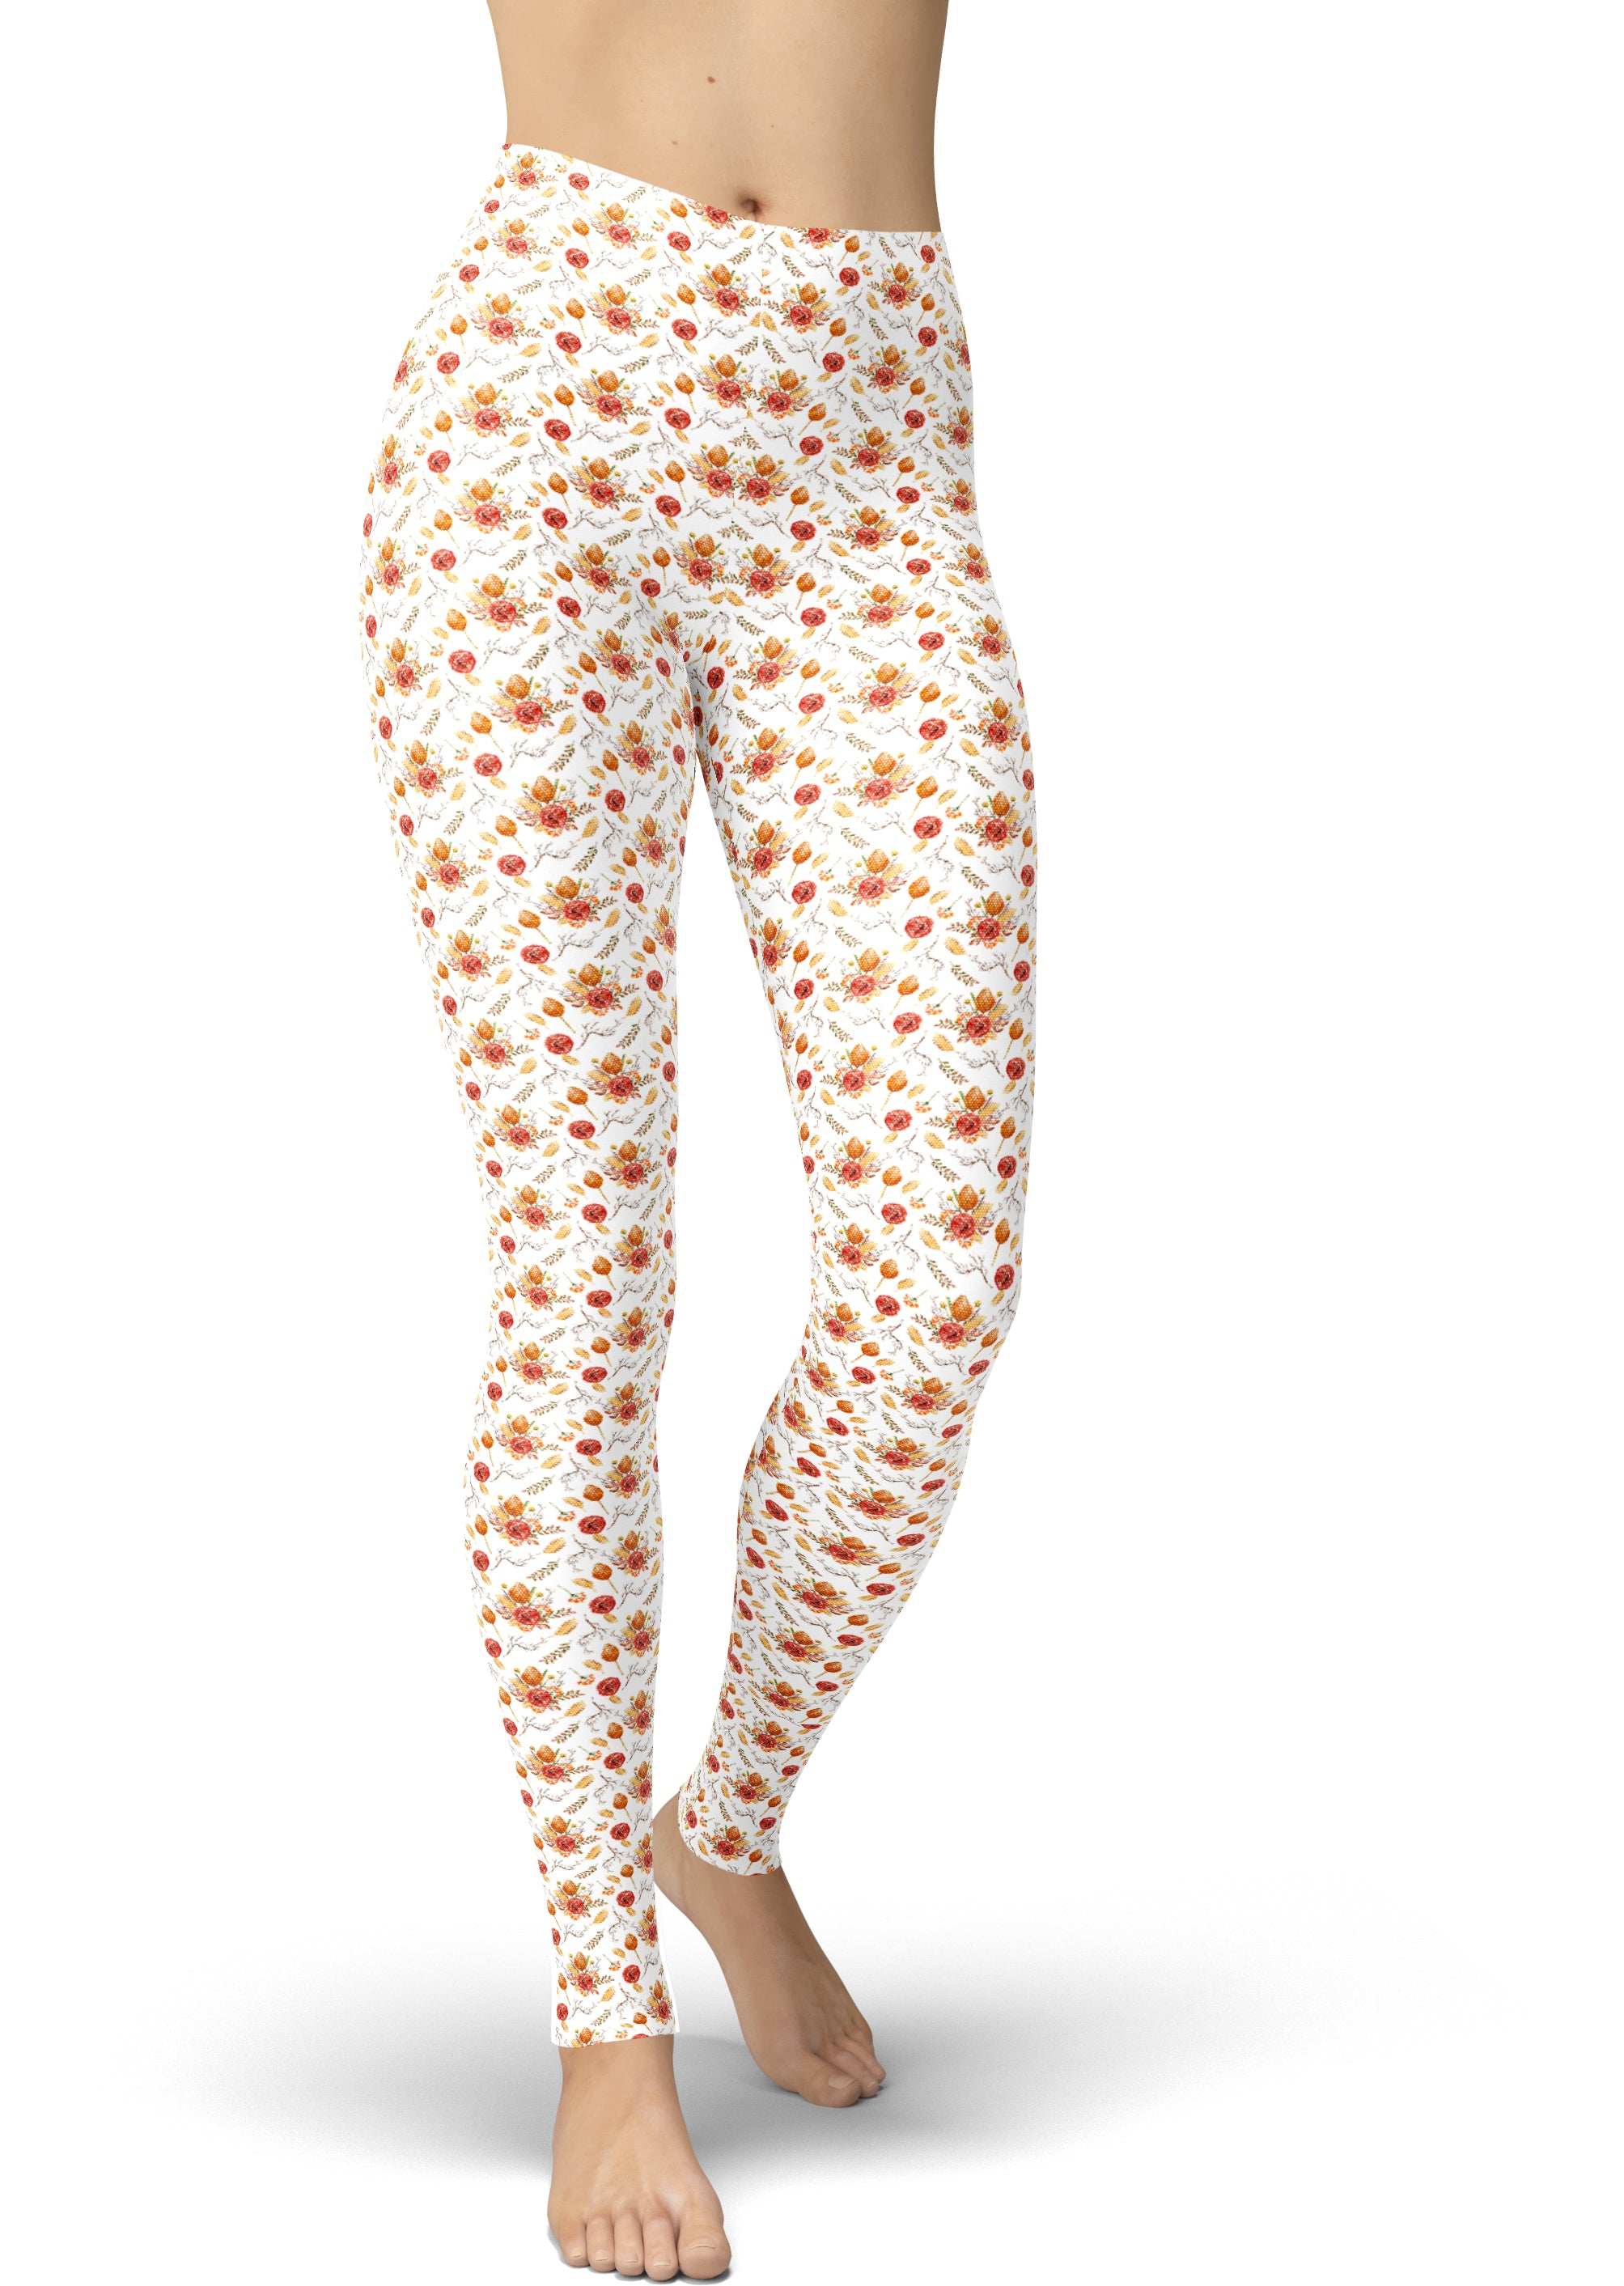 October Harvest Leggings